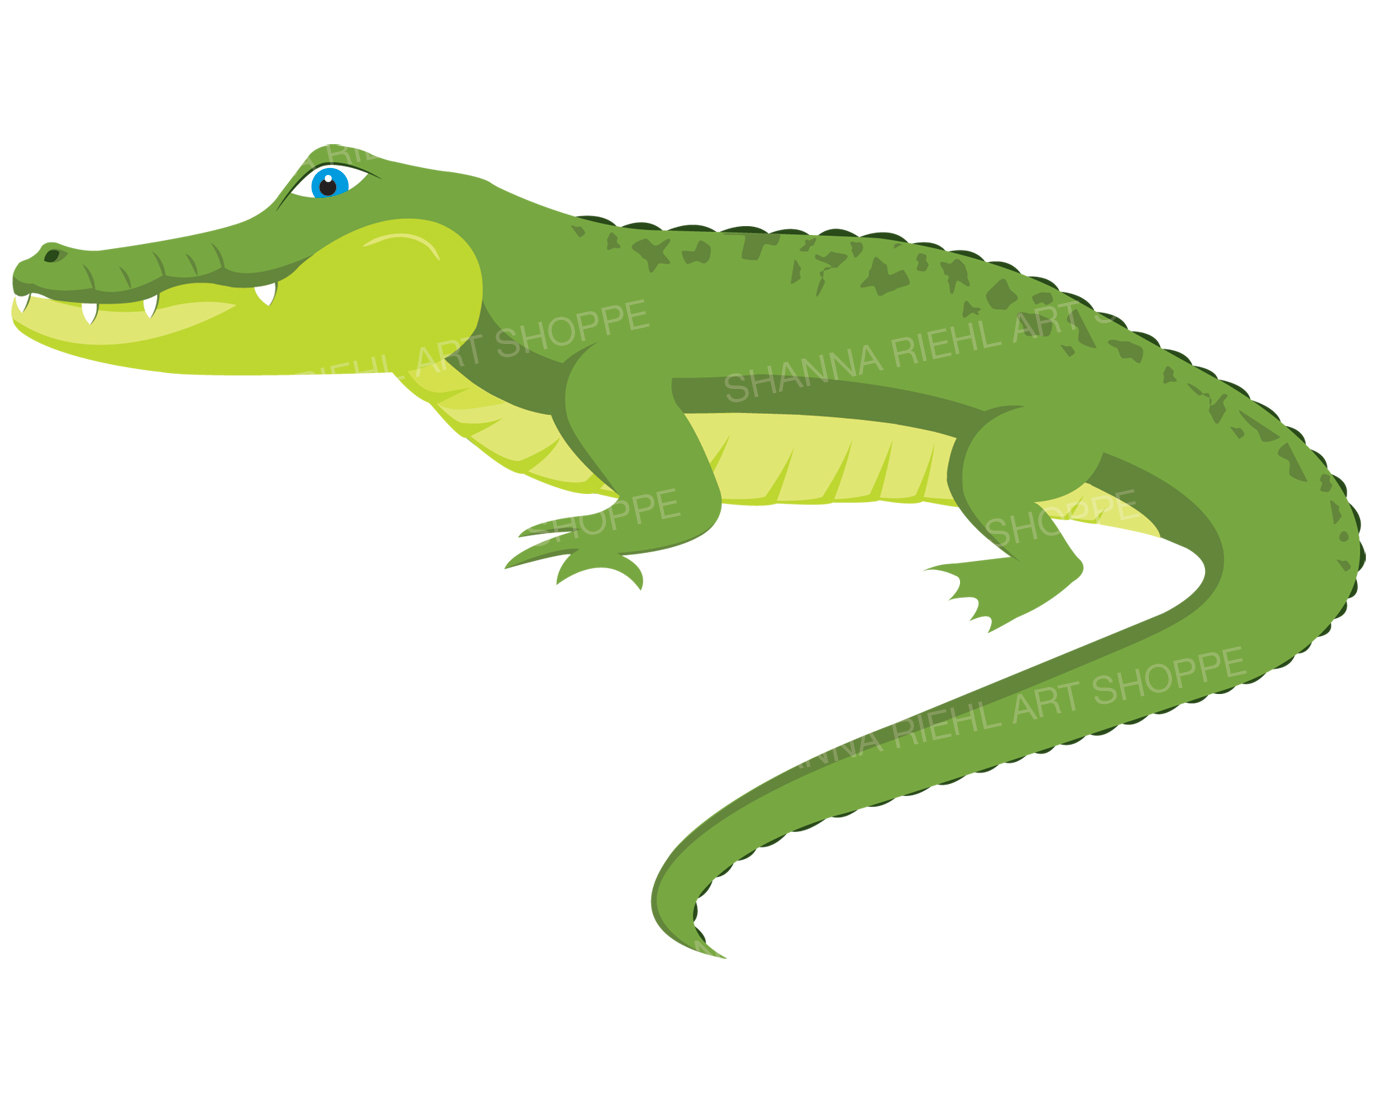 Alligator Clipart | Crocodile Digital Do-Alligator Clipart | Crocodile Digital Download Art | Commercial Use Swamp Printable Art | Jungle Safari Clip Art | Safari Animals Gator Art-15